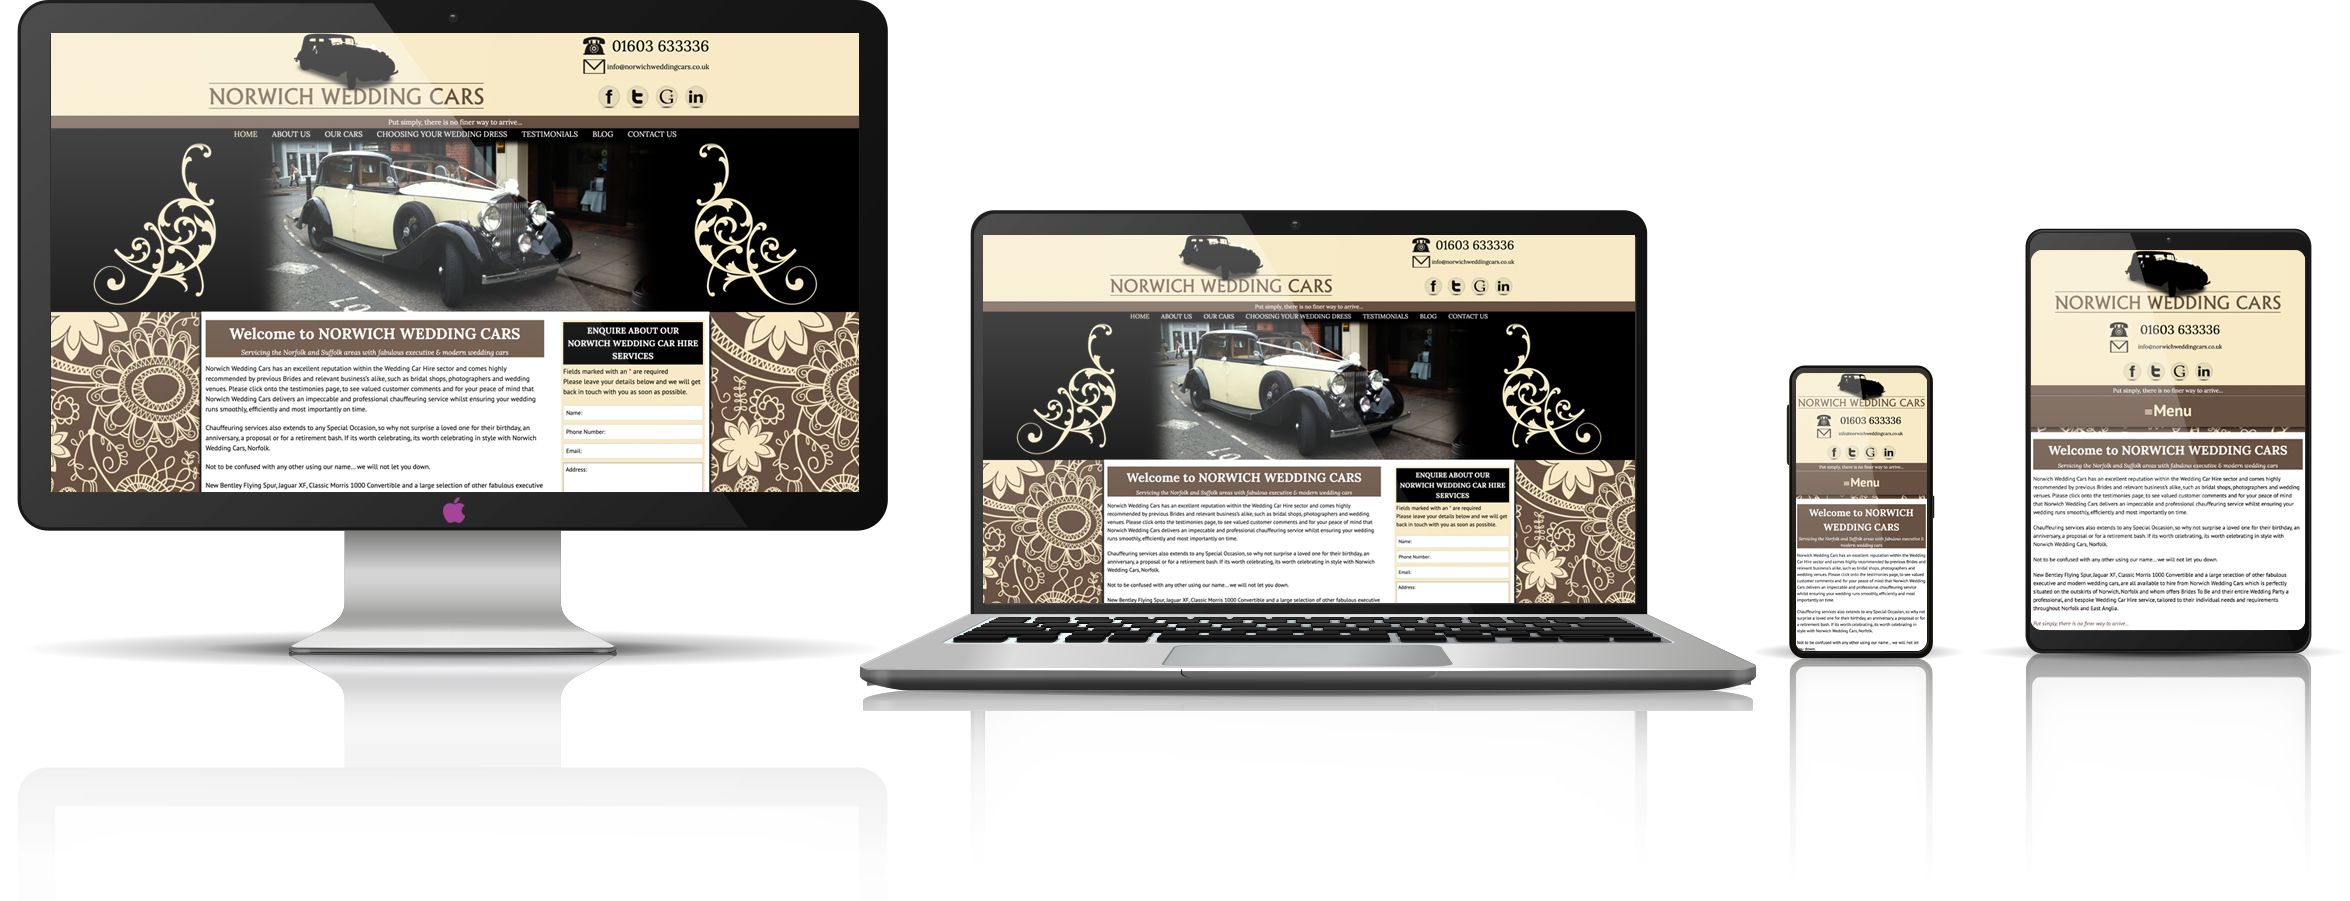 The Norwich Wedding Cars fully responsive mock-up images showing desktop, laptop, tablet, and mobile phone devices.